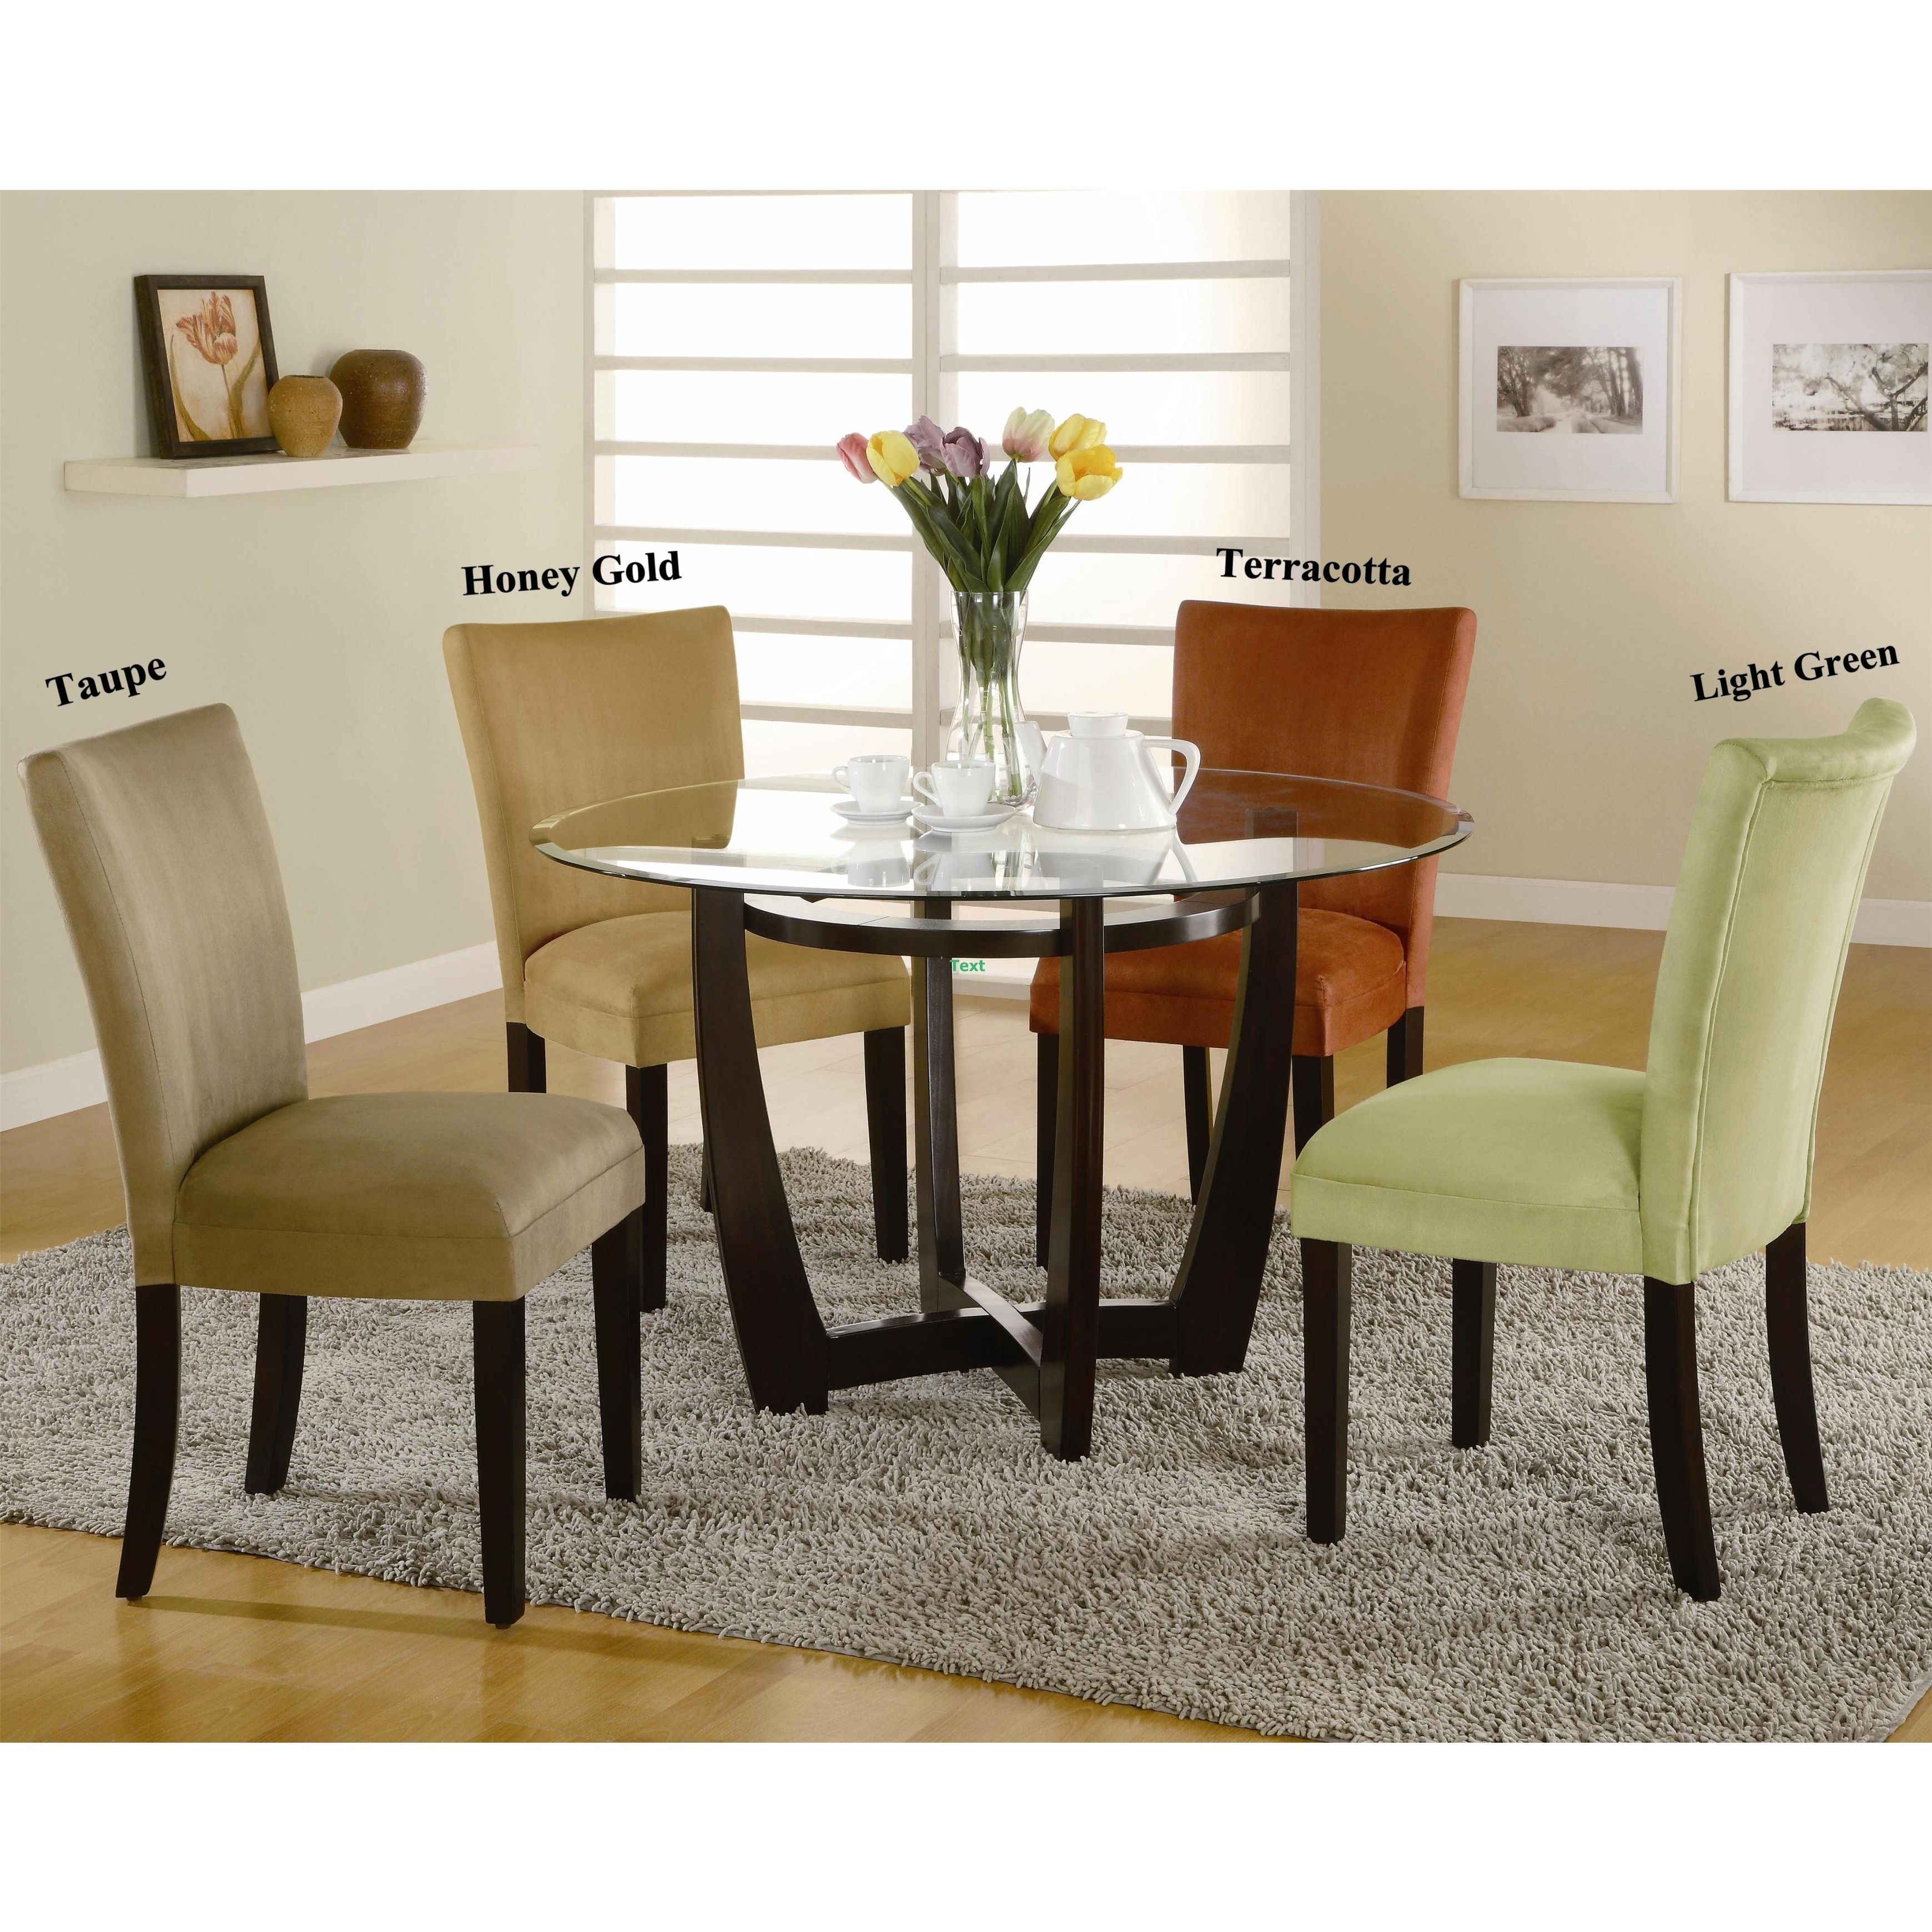 Mirage Round Glass Top Table  Microfiber Parson Chairs 5Piece Prepossessing Glass Top Dining Room Table Decorating Design